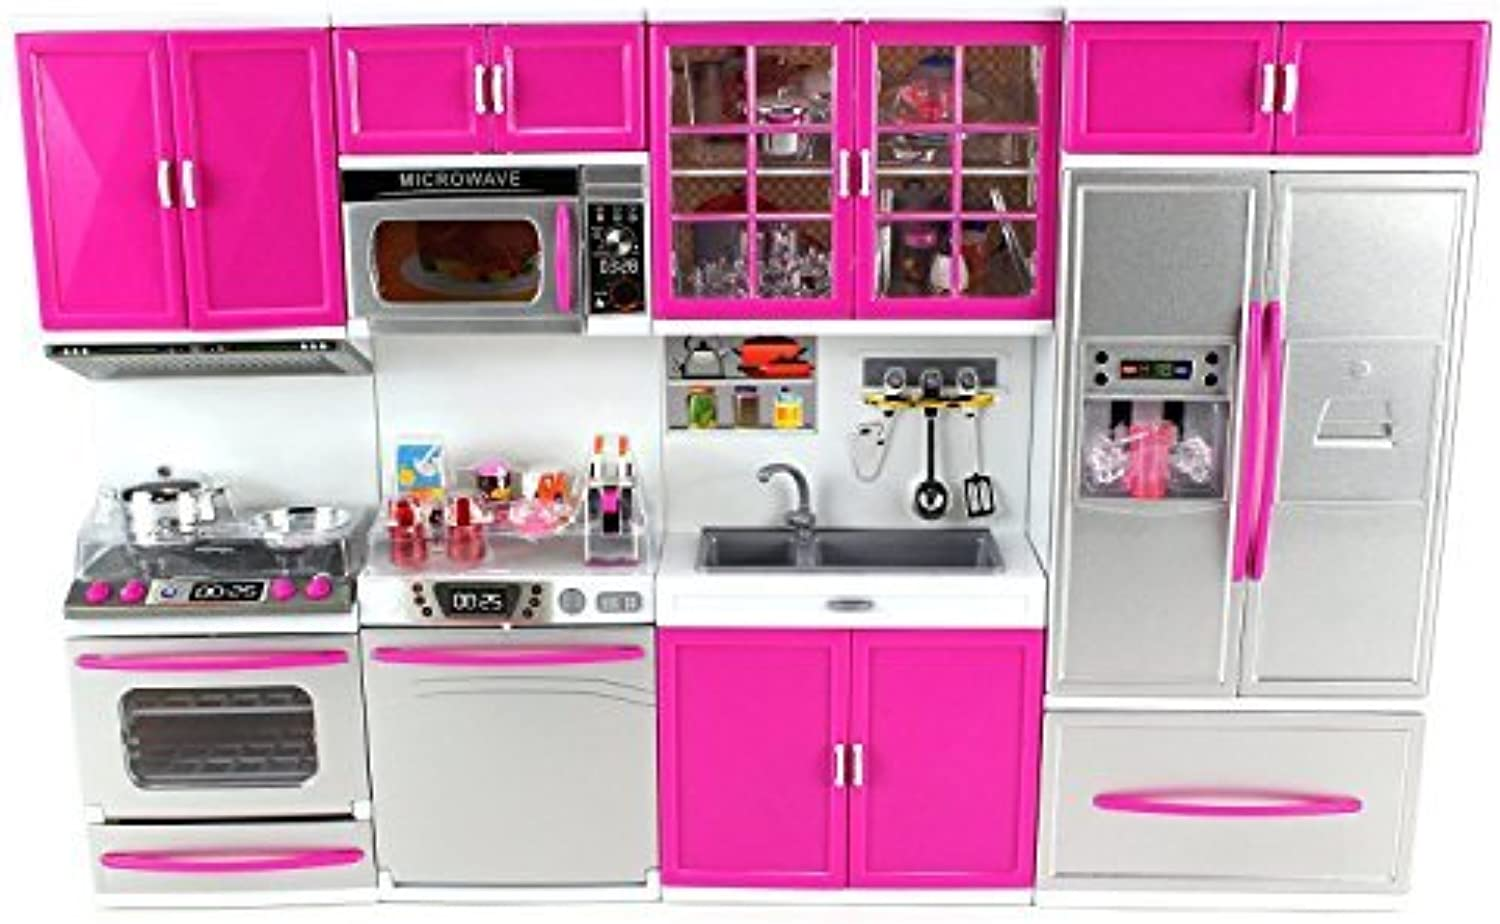 Doll Playsets My Modern Kitchen 32 Full Deluxe Kit with Lights and Sounds, 21 x 13.8 x 4 -Inches by Doll Playsets